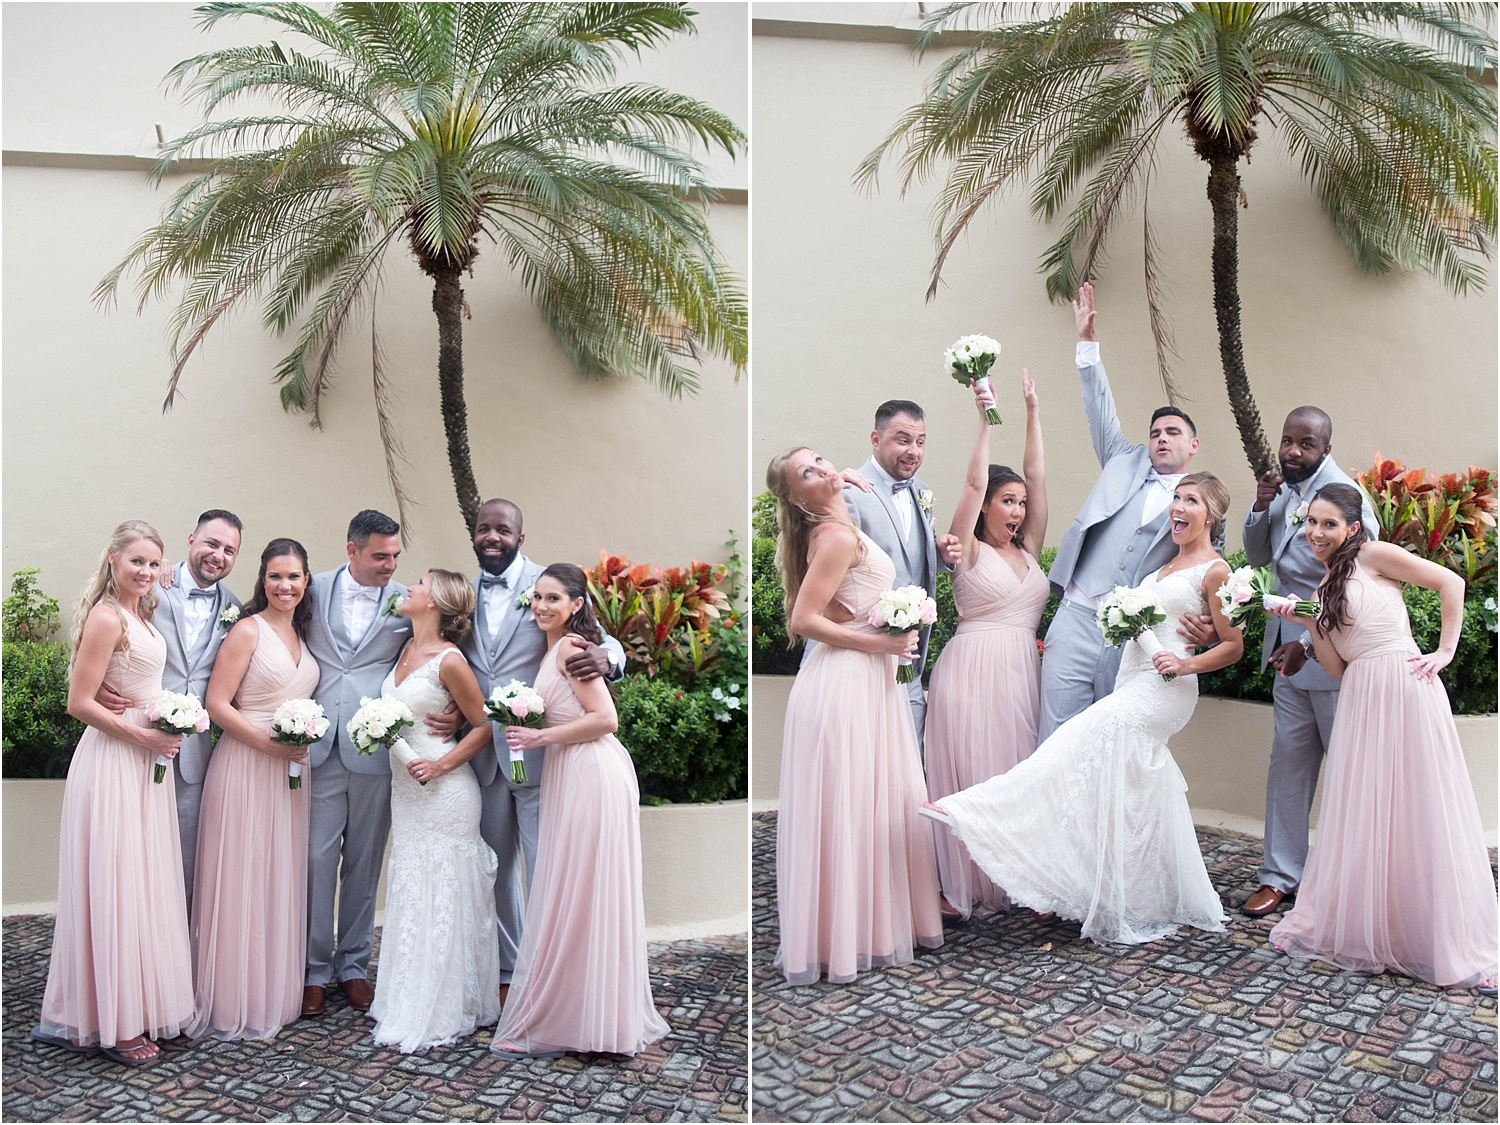 How to photograph family and bridal party portraits quickly at weddings 22